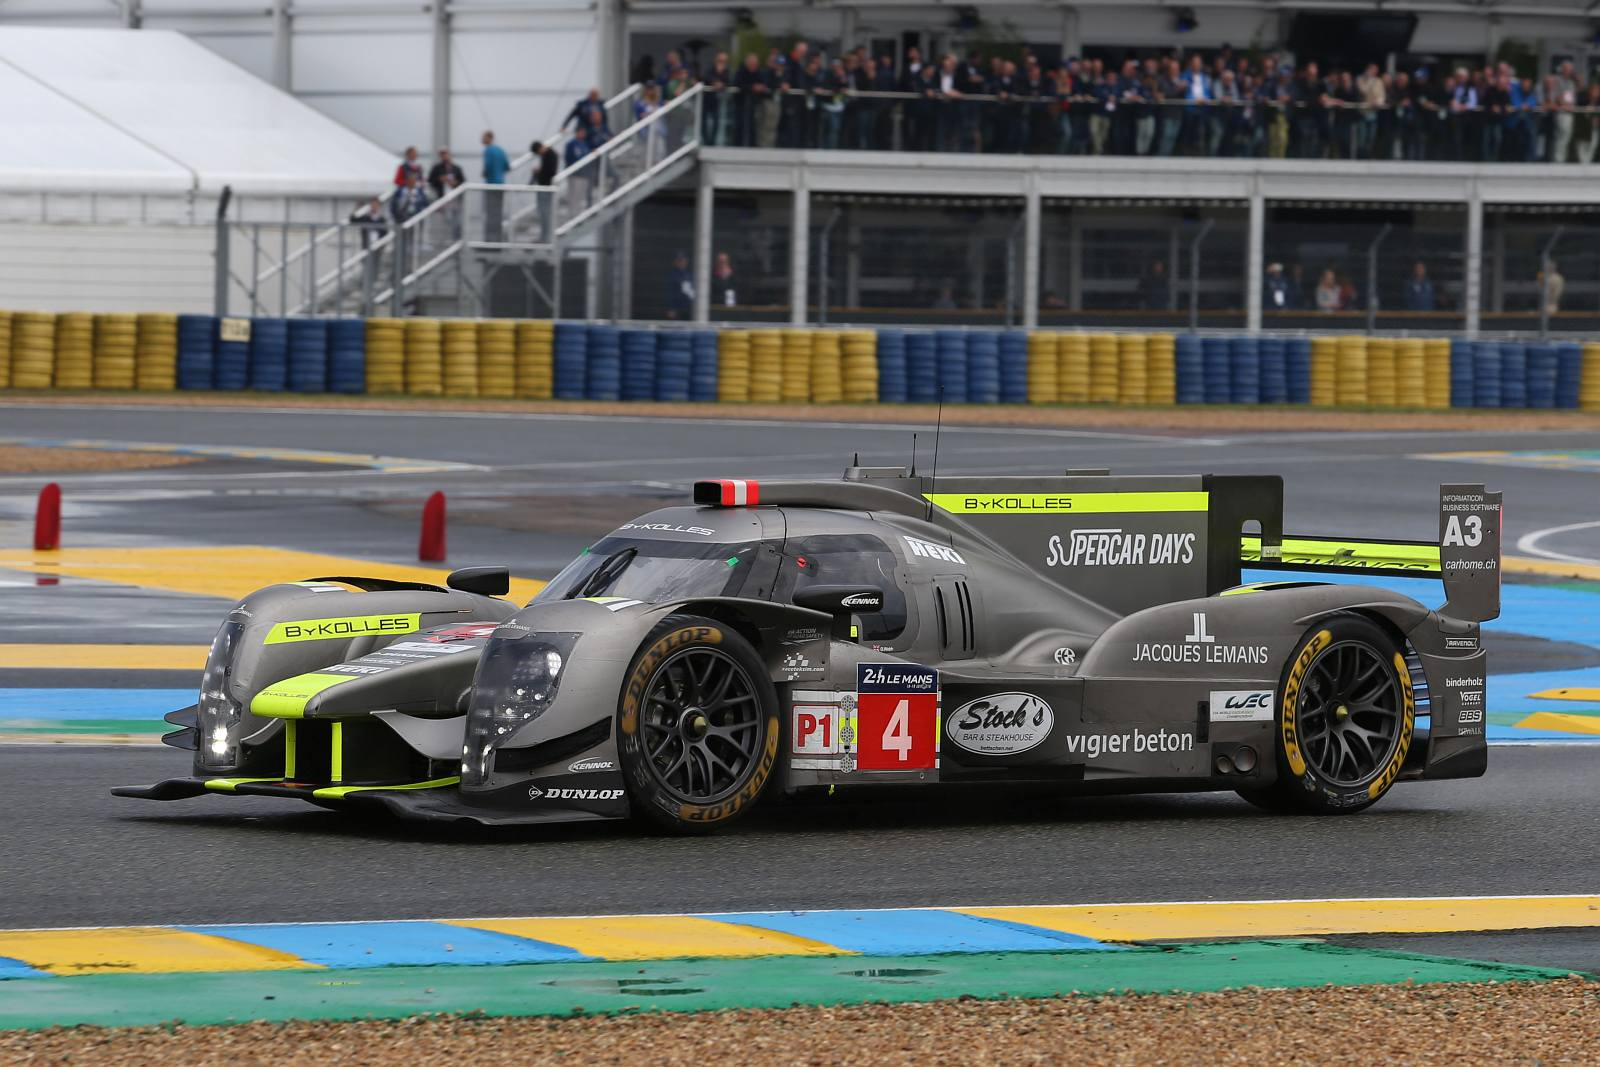 byKOLLES-racing-WEC-le-mans-2016-31